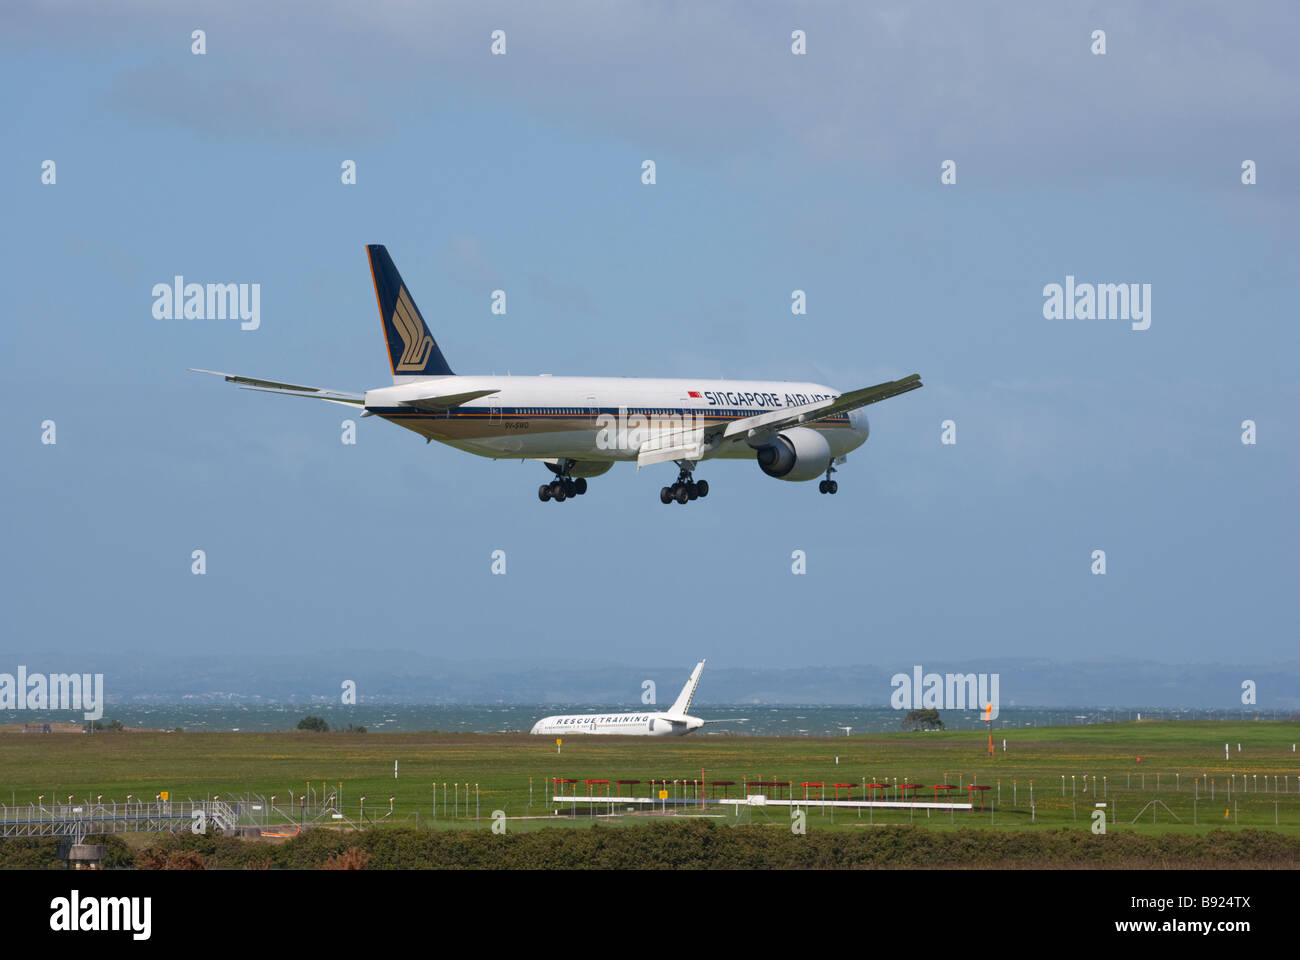 Boeing 777-312ER of Singapore Airlines on final approach for landing at Auckland International Airport. - Stock Image